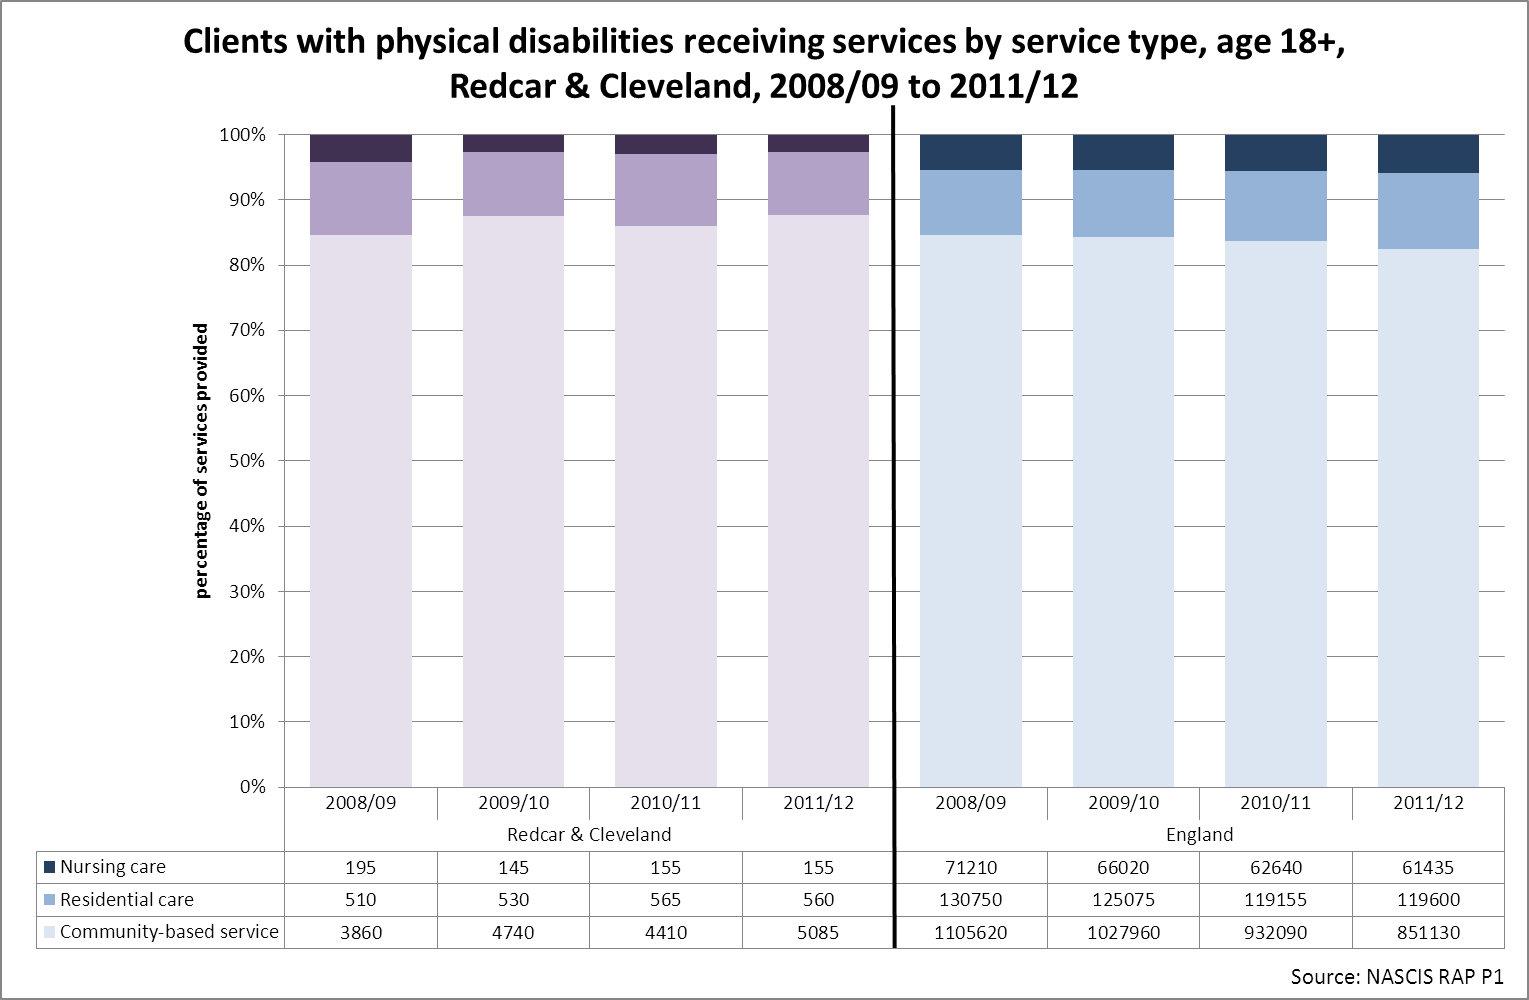 Clients with physical disabilities by service type, Redcar & Cleveland, 2008/9 to 2011/12